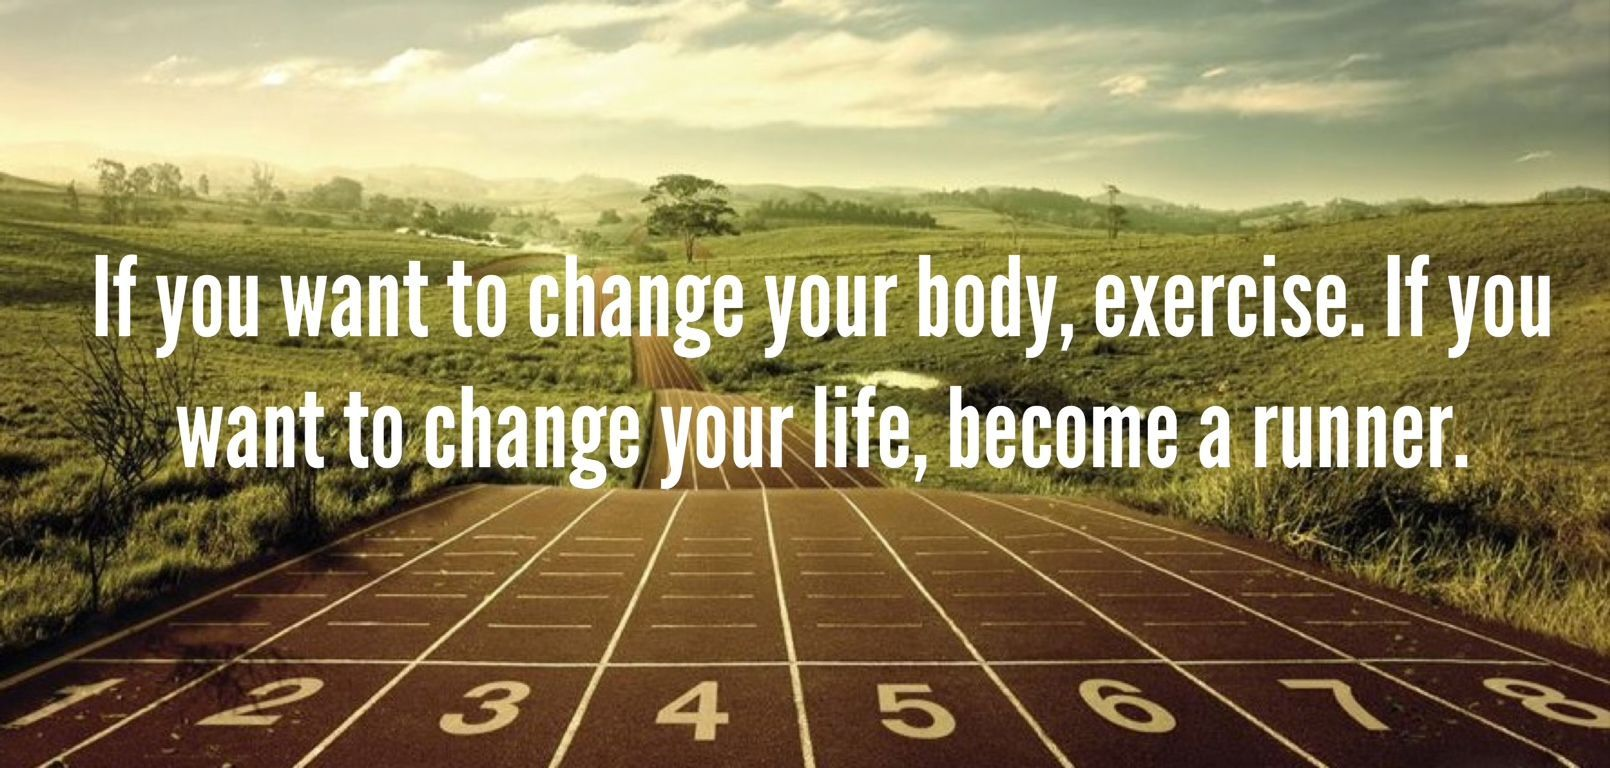 Inspirational Running Quotes For Race Day Pinterest Visitquotes